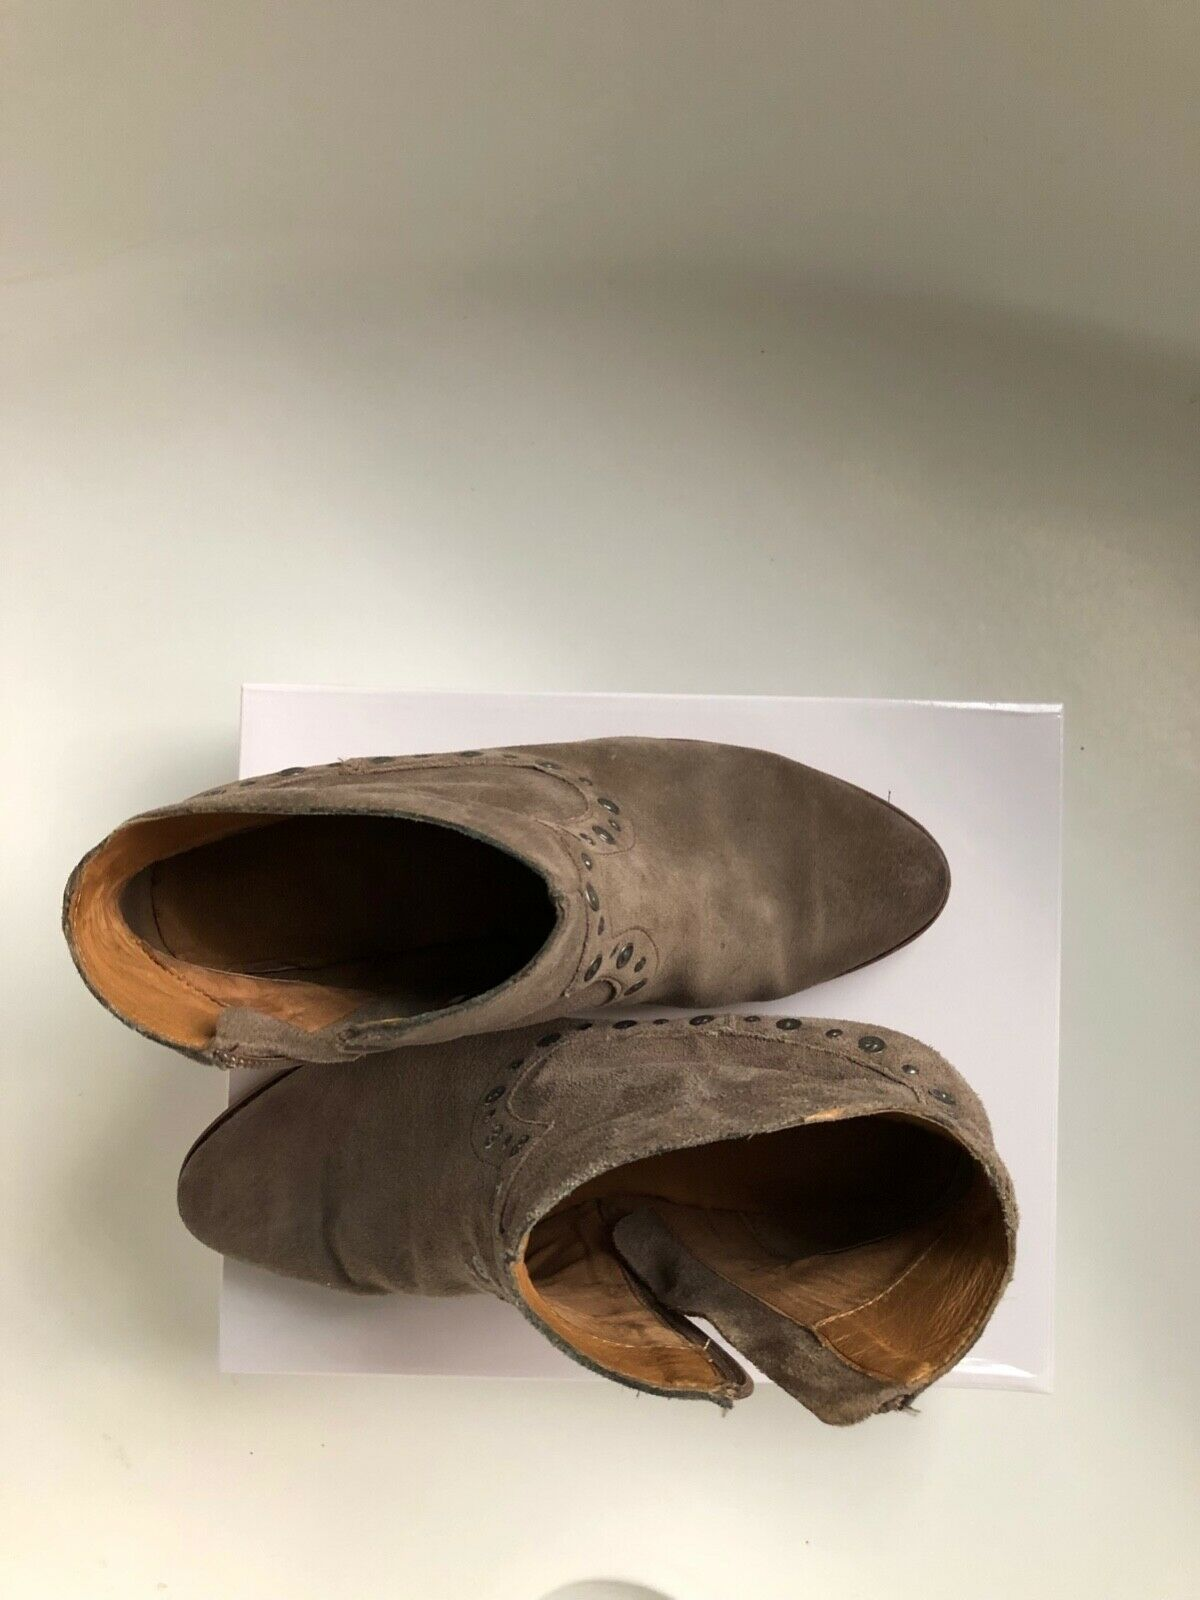 Corso Come Womens Ankle boot.Comes with box. In good condition